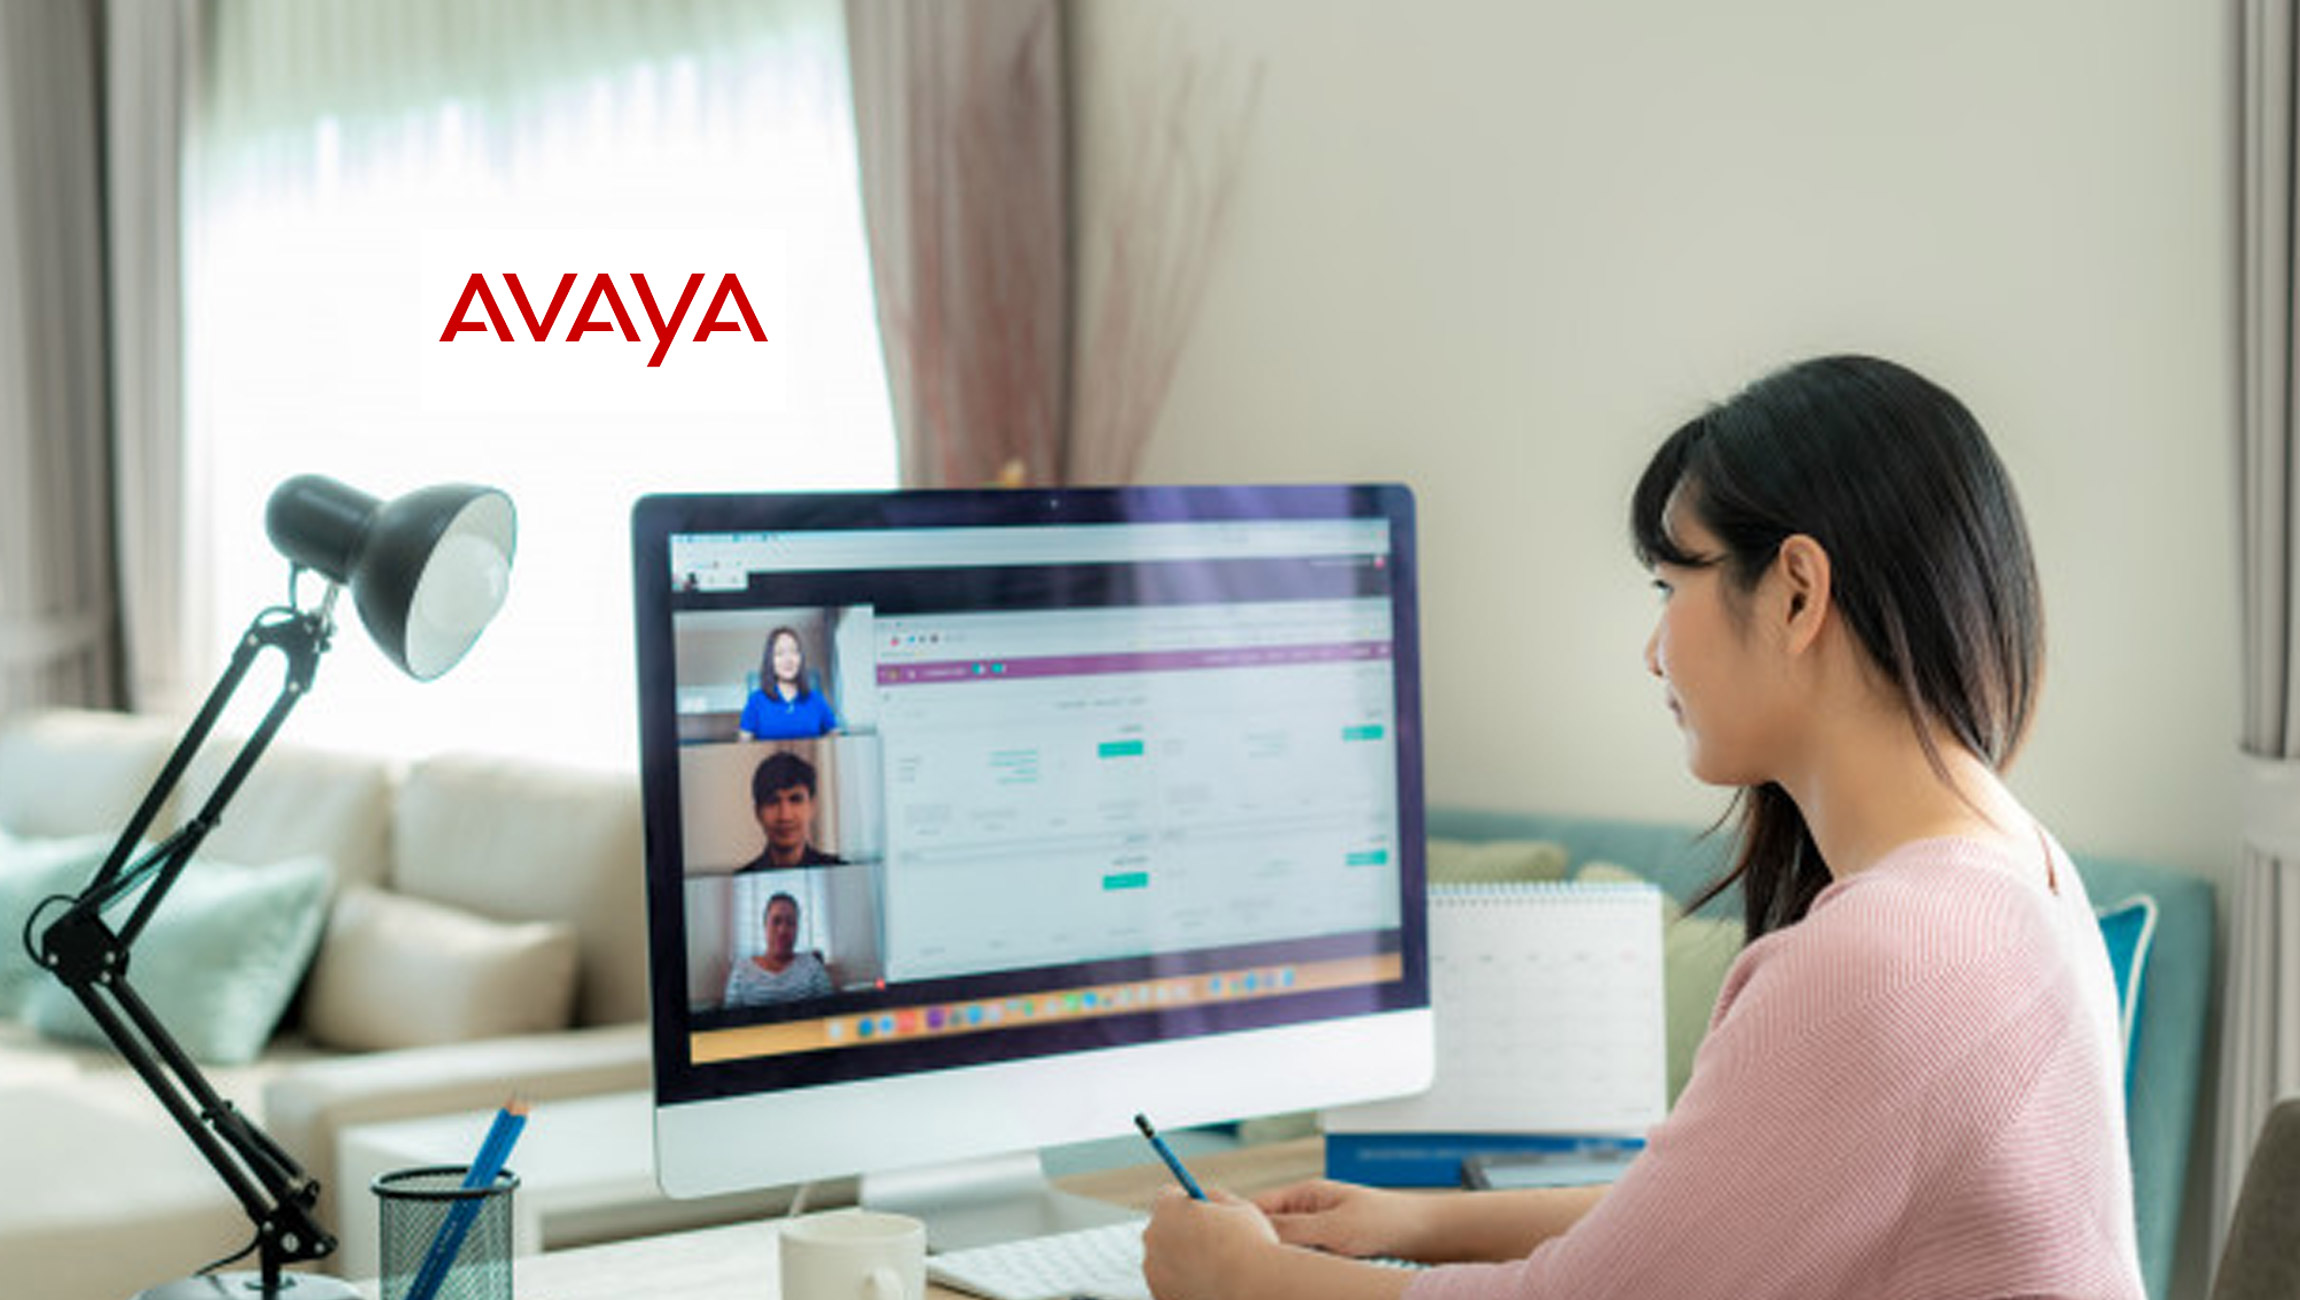 Avaya Named A Leader in the 2021 Aragon Research Globe™ for Video Conferencing – Enabling the New World of Work